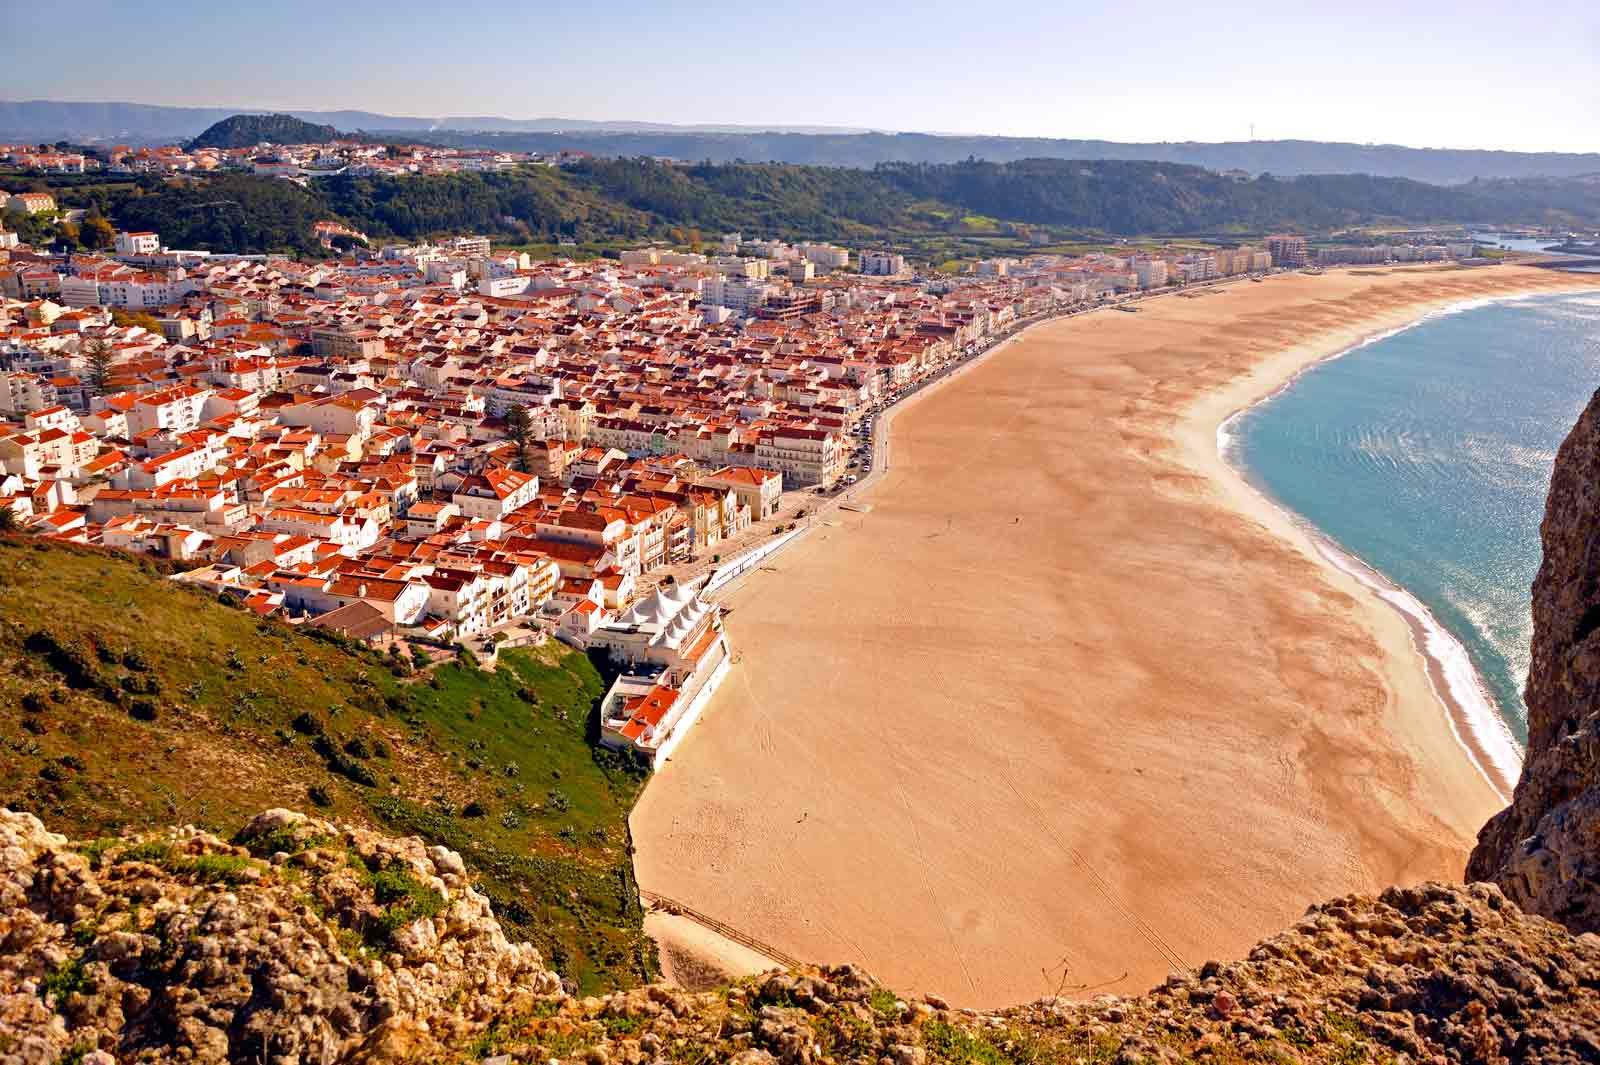 Fisherman's village of Nazaré